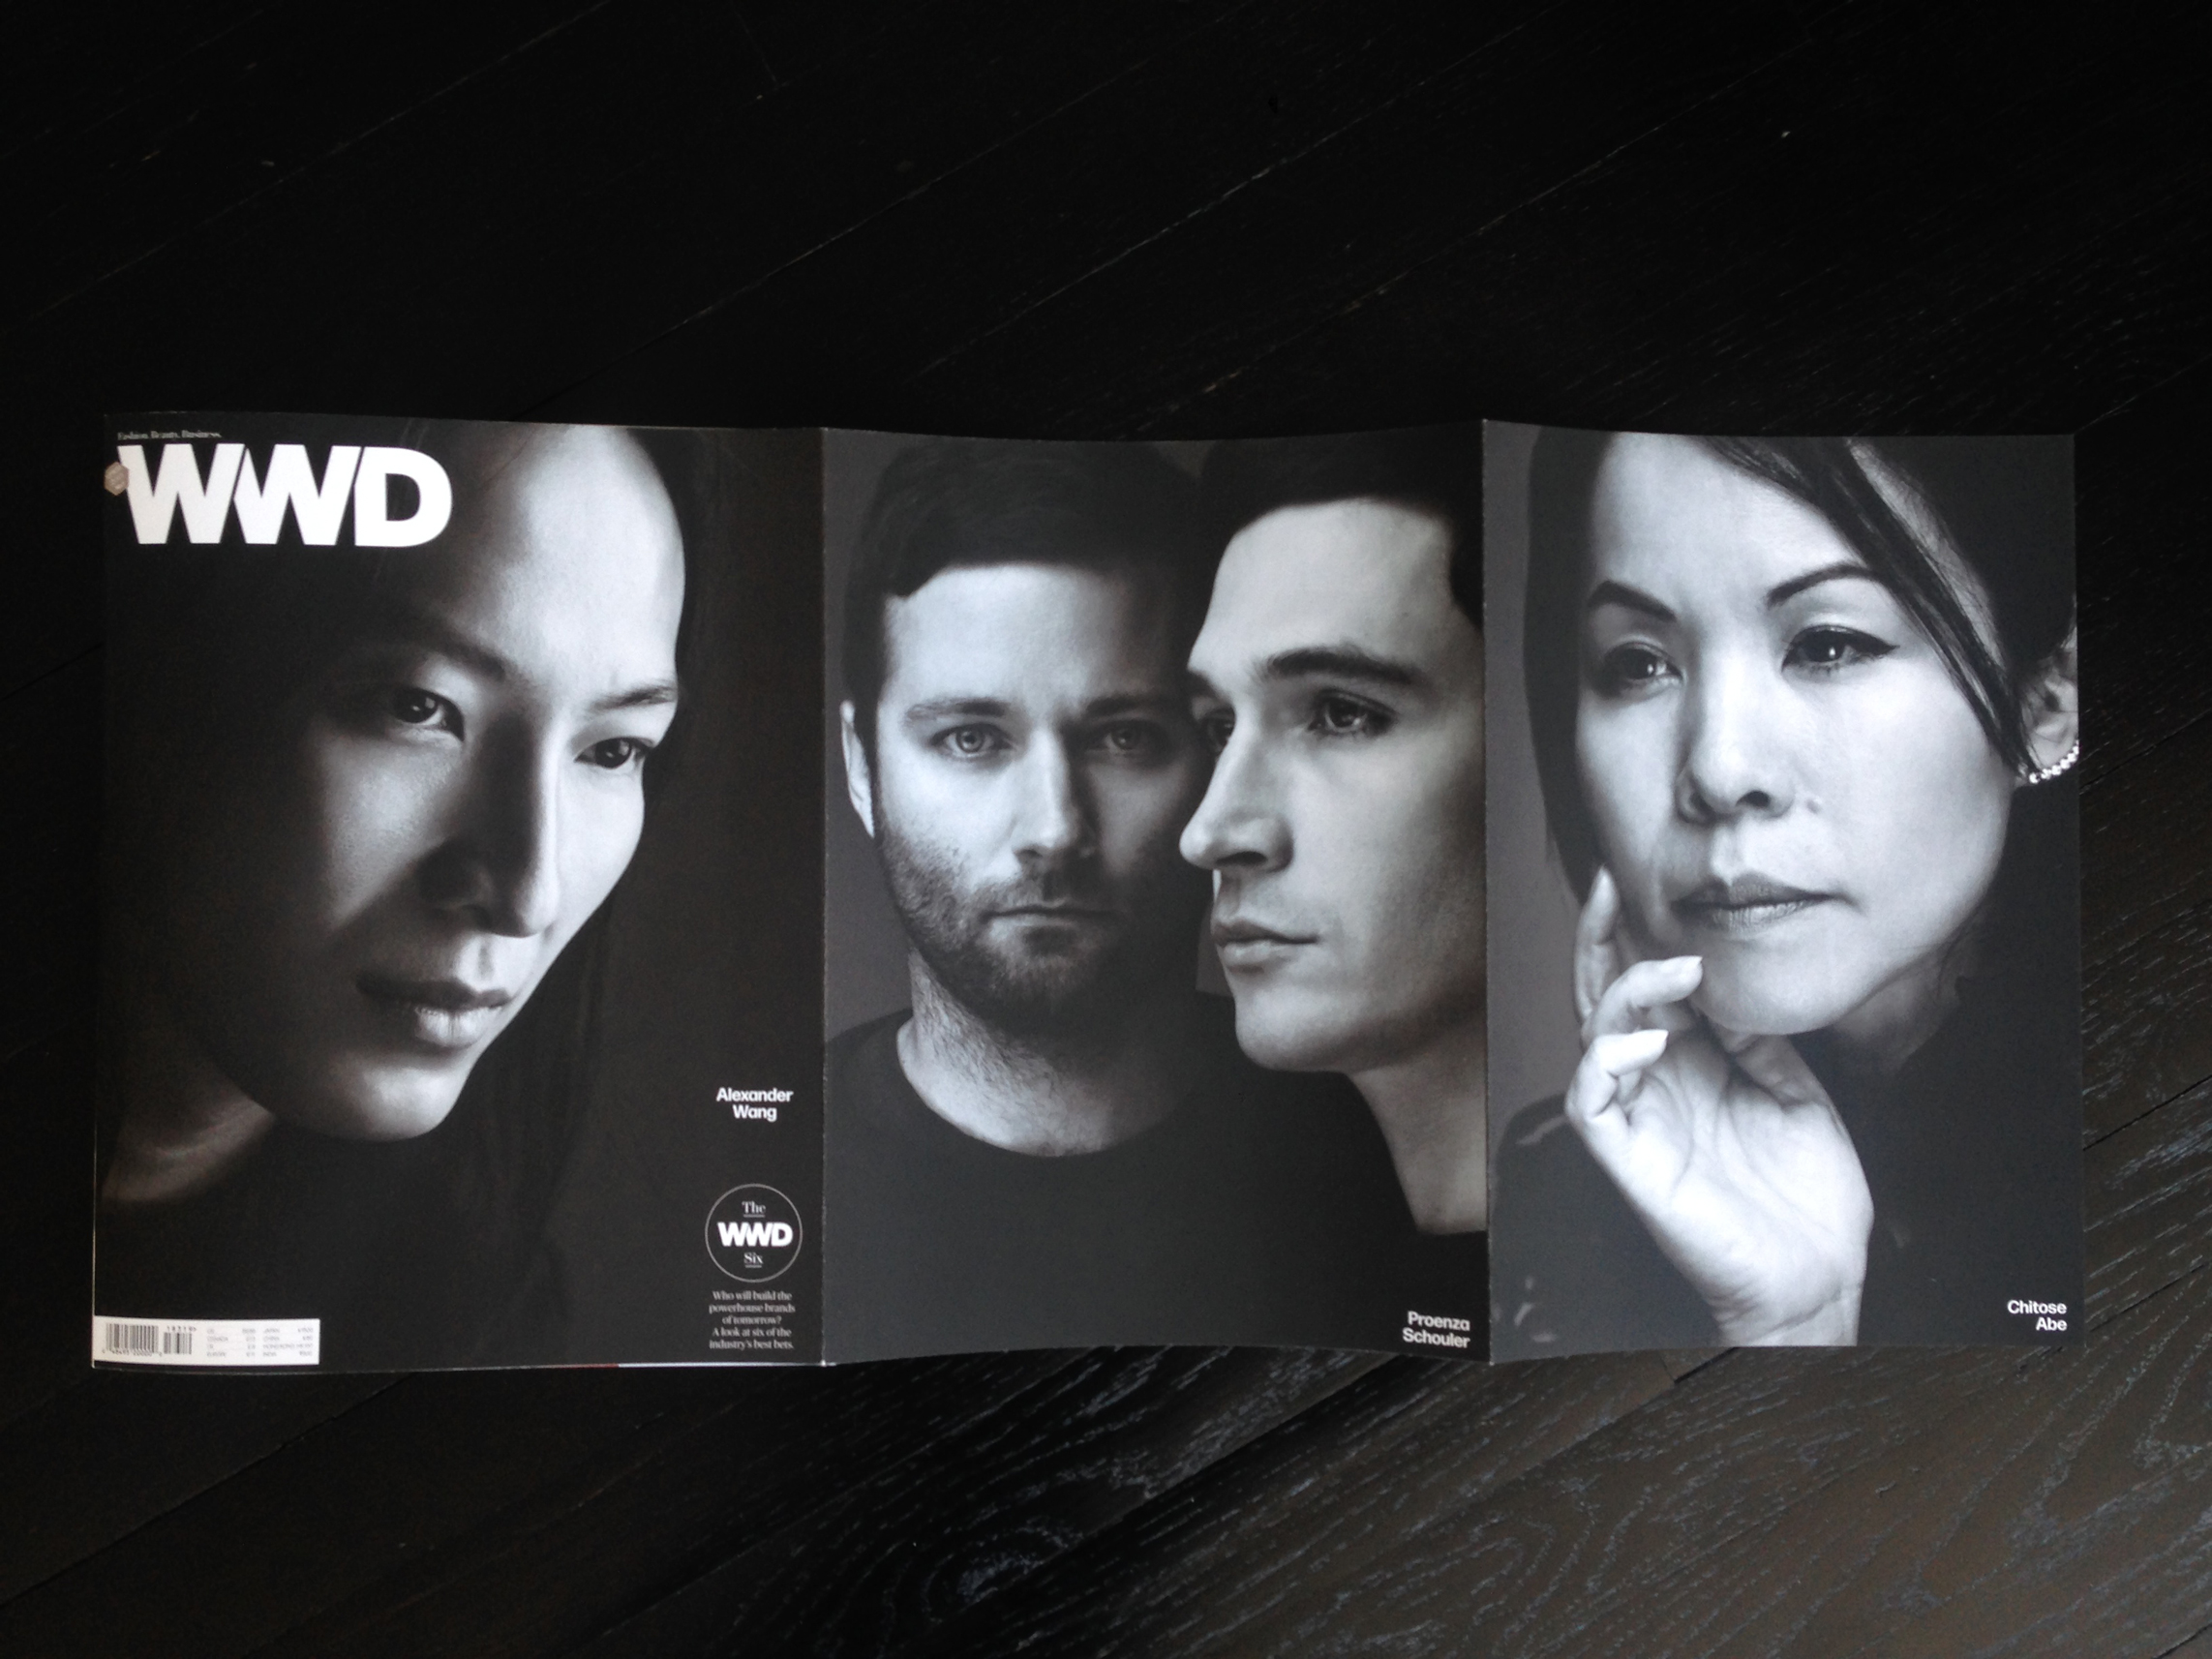 Triple gatefold A, featuring Wang, Proenza Schouler and Chitose Abe.  Photography by Nigel Parry. The covers were photographed in 6 days and shipped to the printer less than 48 hours after the final shoot was complete, which meant making selects immediately after each session and hoping they'd all fit together nicely in a triptych at the end (I also did not know who'd be on the cover other than Wang).